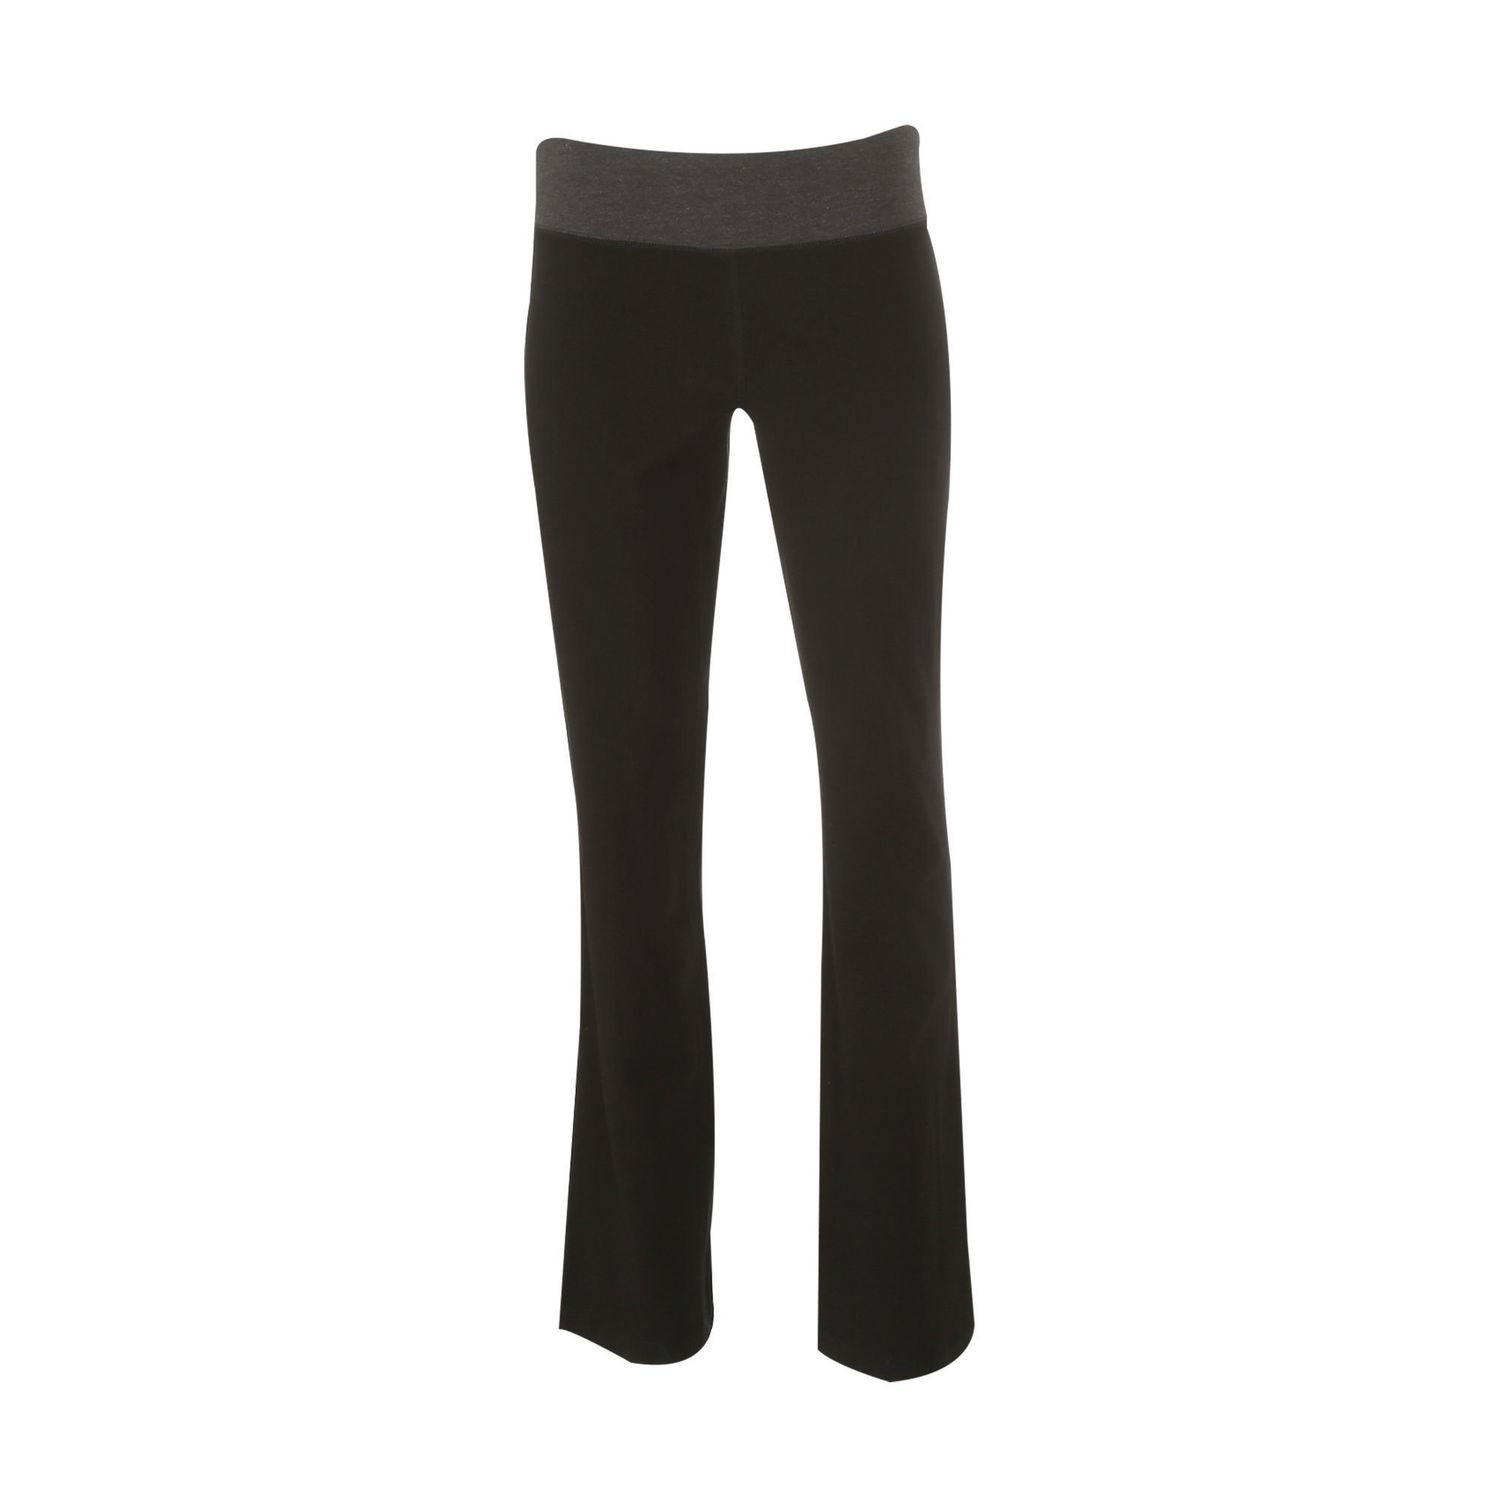 18b70abe9d01 George Women s Yoga Pants - image 1 of 2 zoomed image